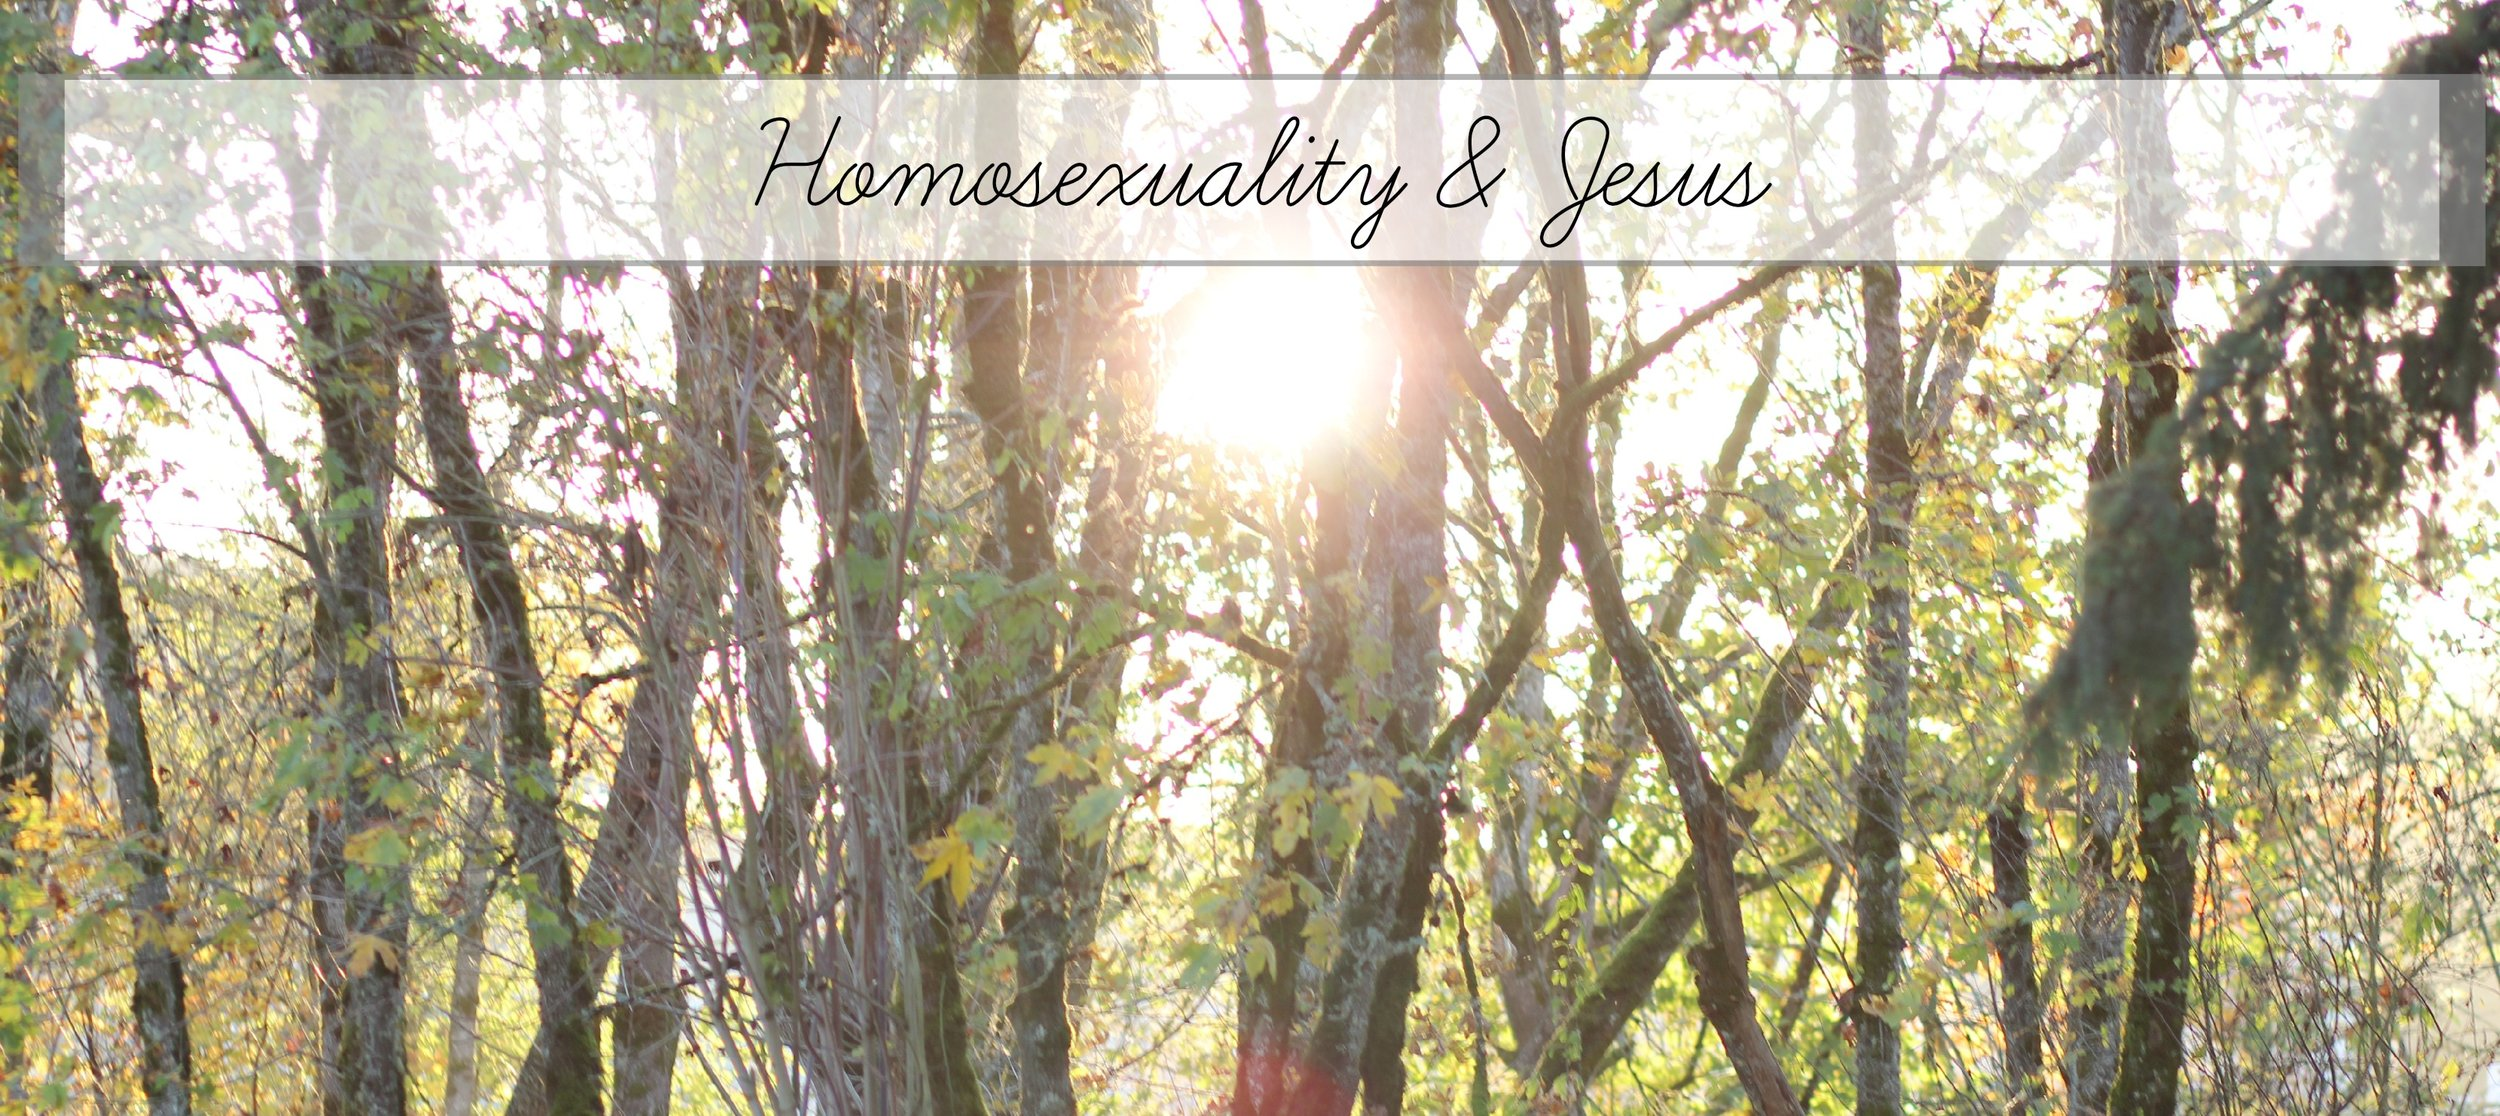 homosexuality and jesus